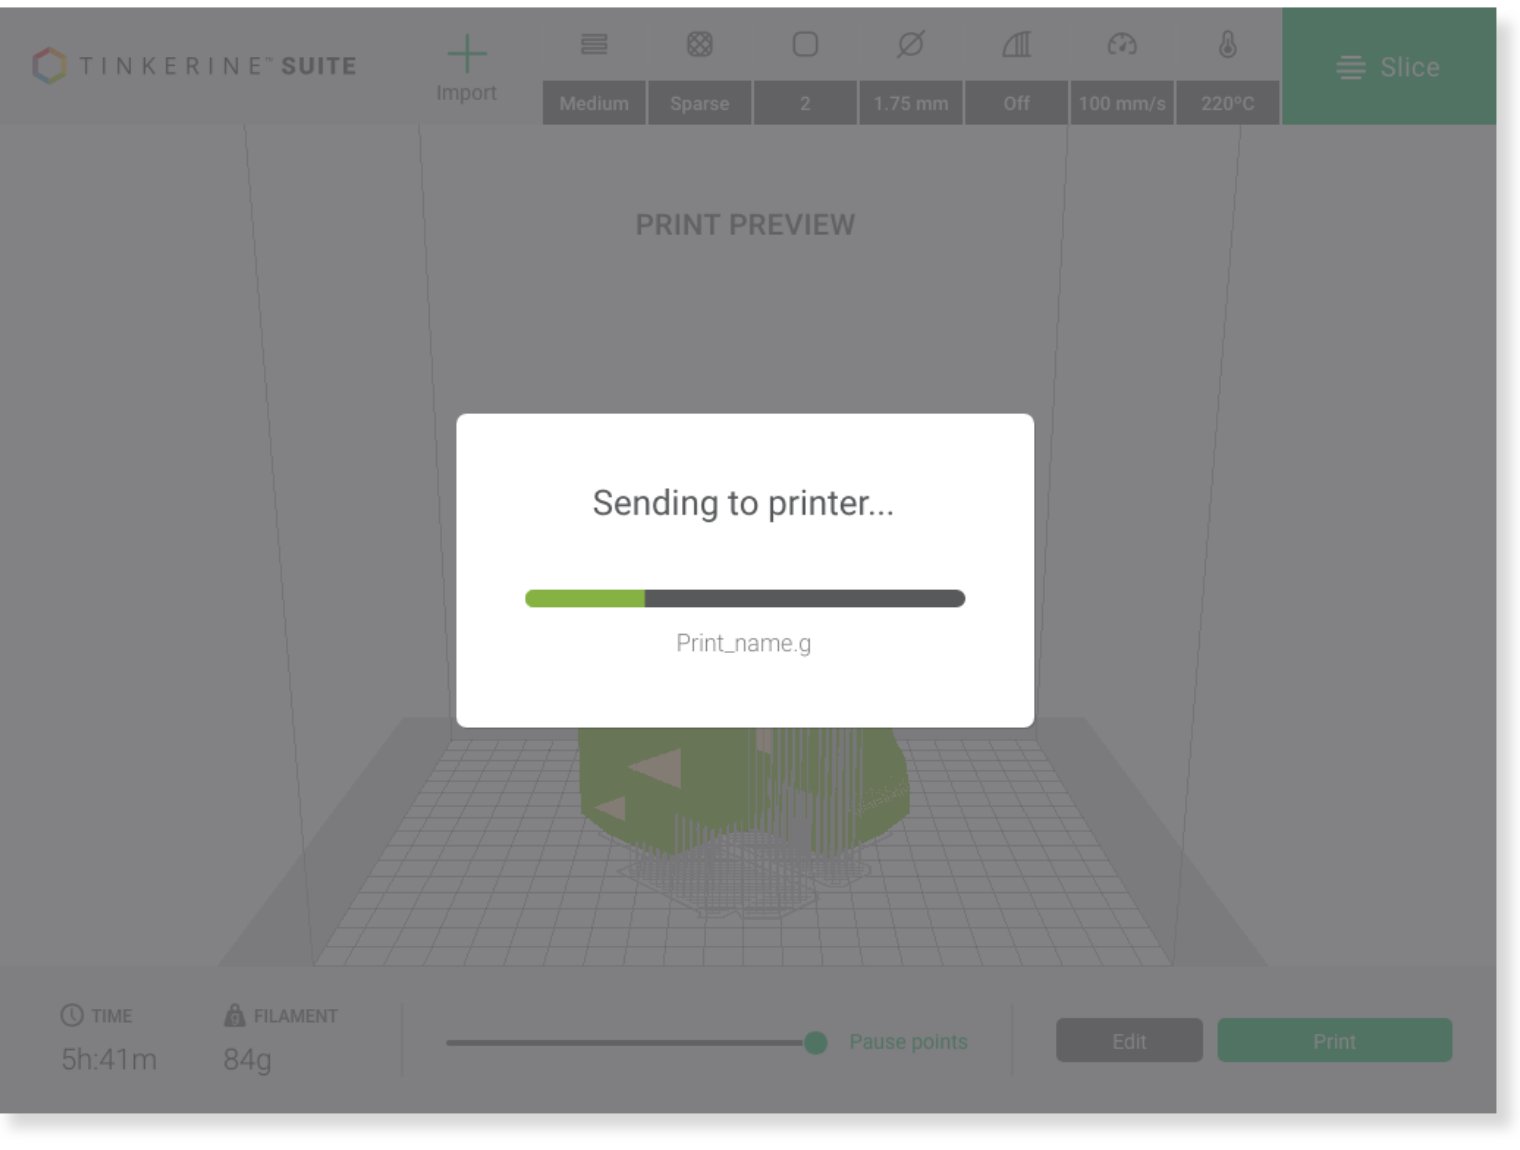 Tinkerine Suite interface showing wifi sending to printer function.